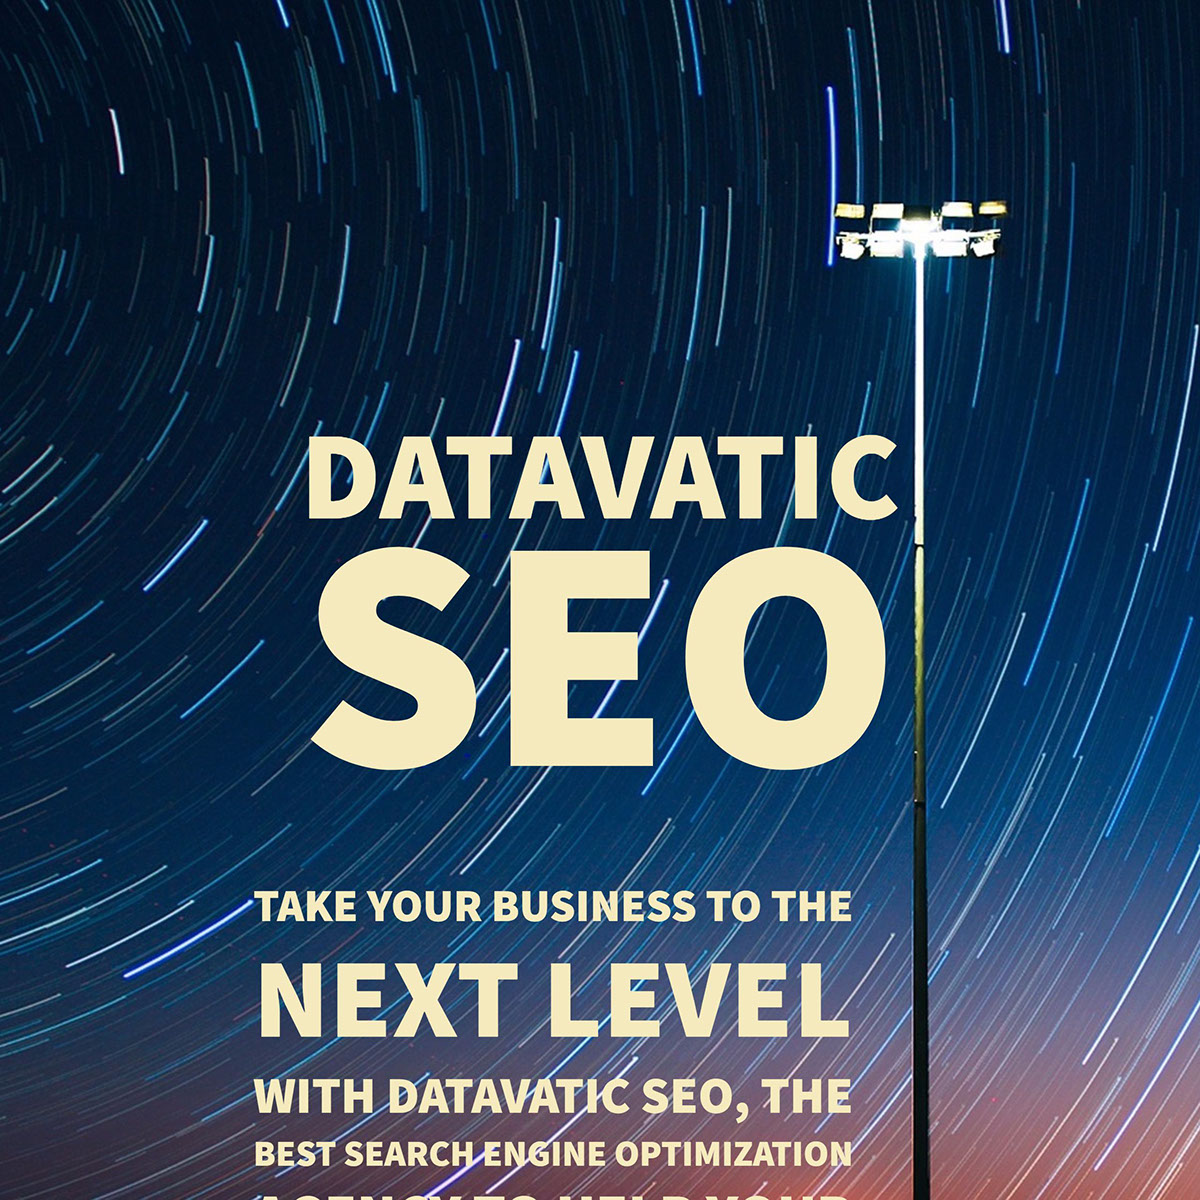 Take your business to the next level with Datavatic SEO, the best Search Engine Optimization agency to help your business dominate the first page of Google and increase it's ROI.